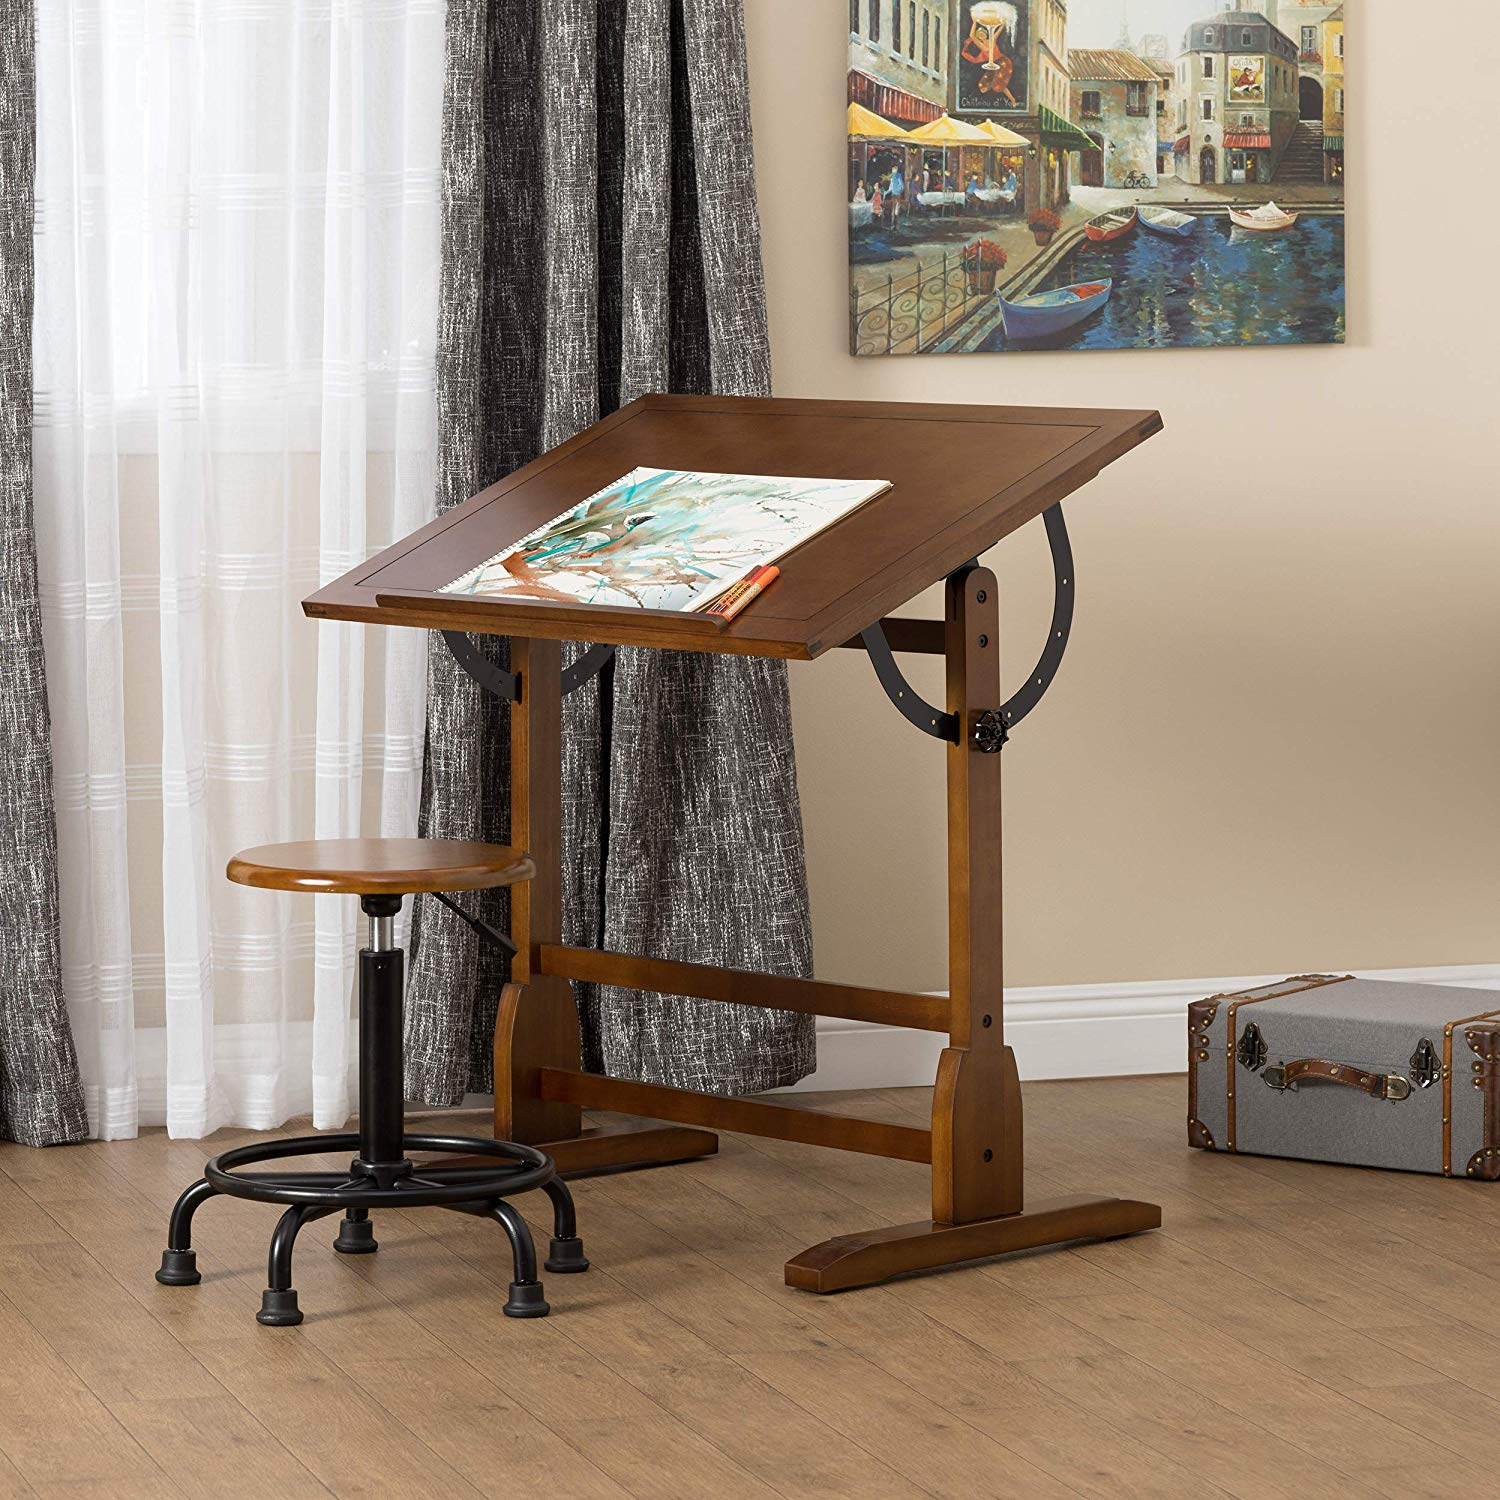 Top 10 Best Drafting Tables in 2020 Reviews | Buyer's Guide